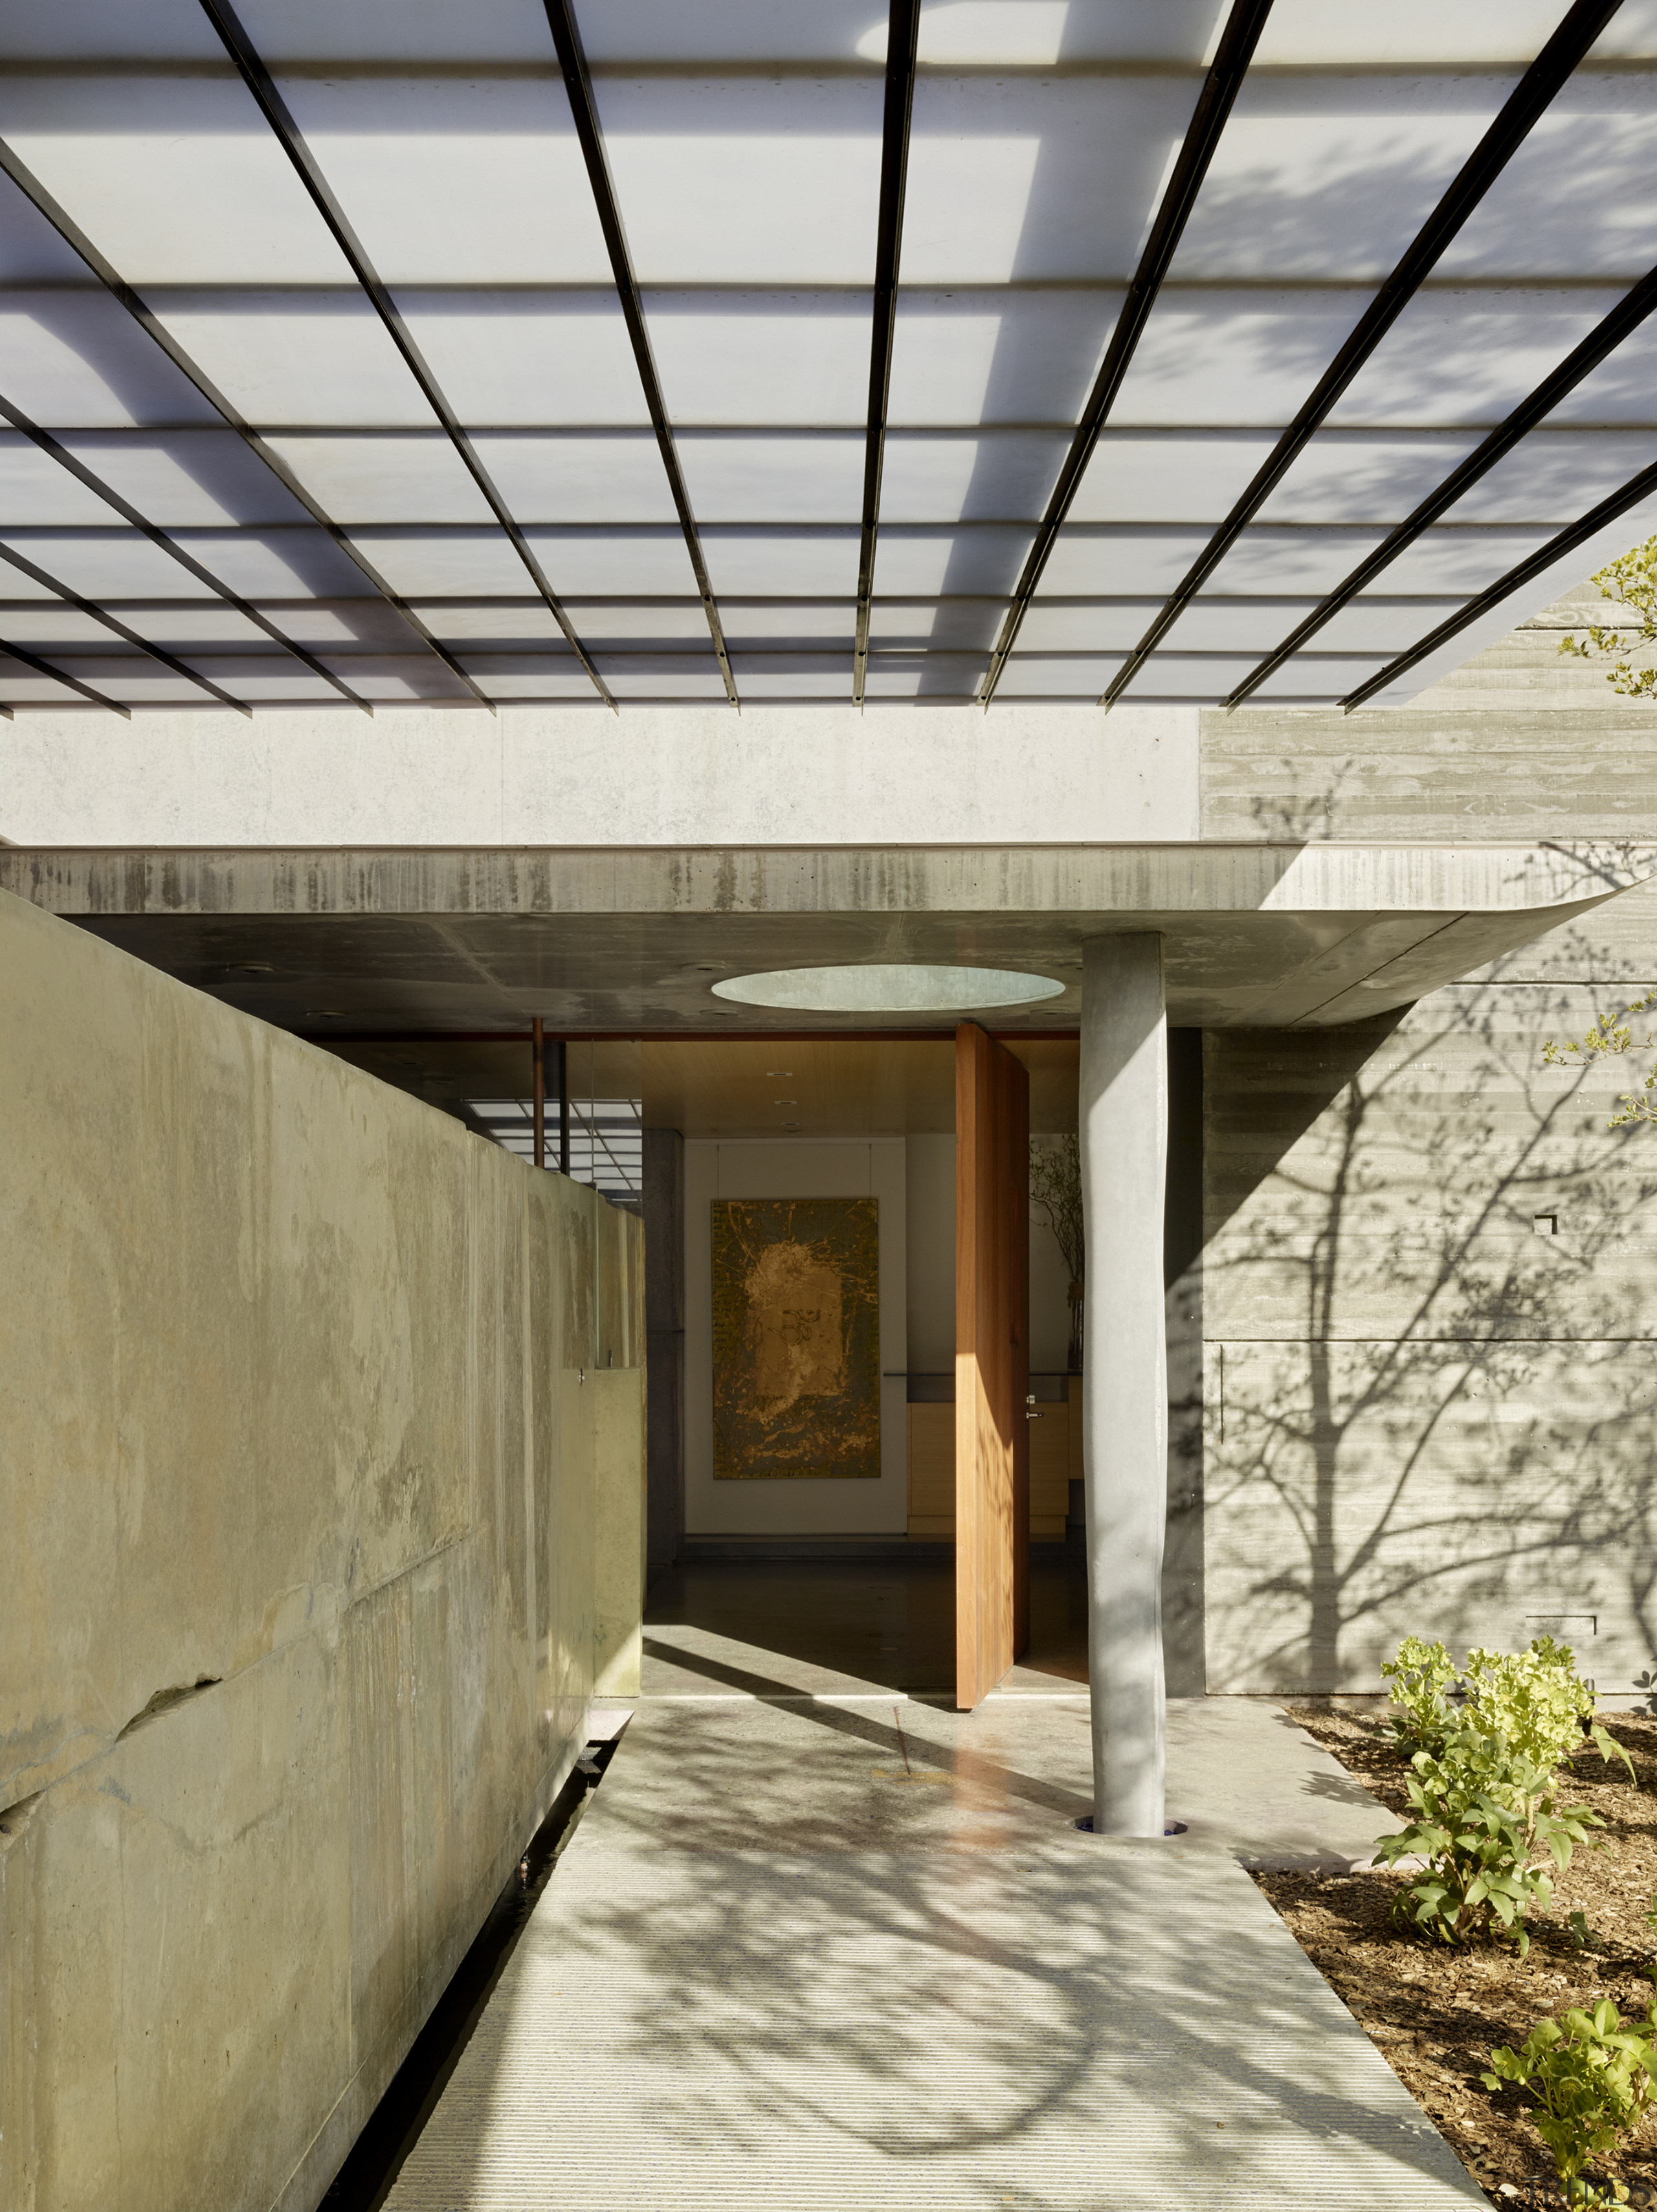 The structural column at the entrance to this architecture, home, house, roof, walkway, entranceway, FuTung Cheng,  Cheng Design